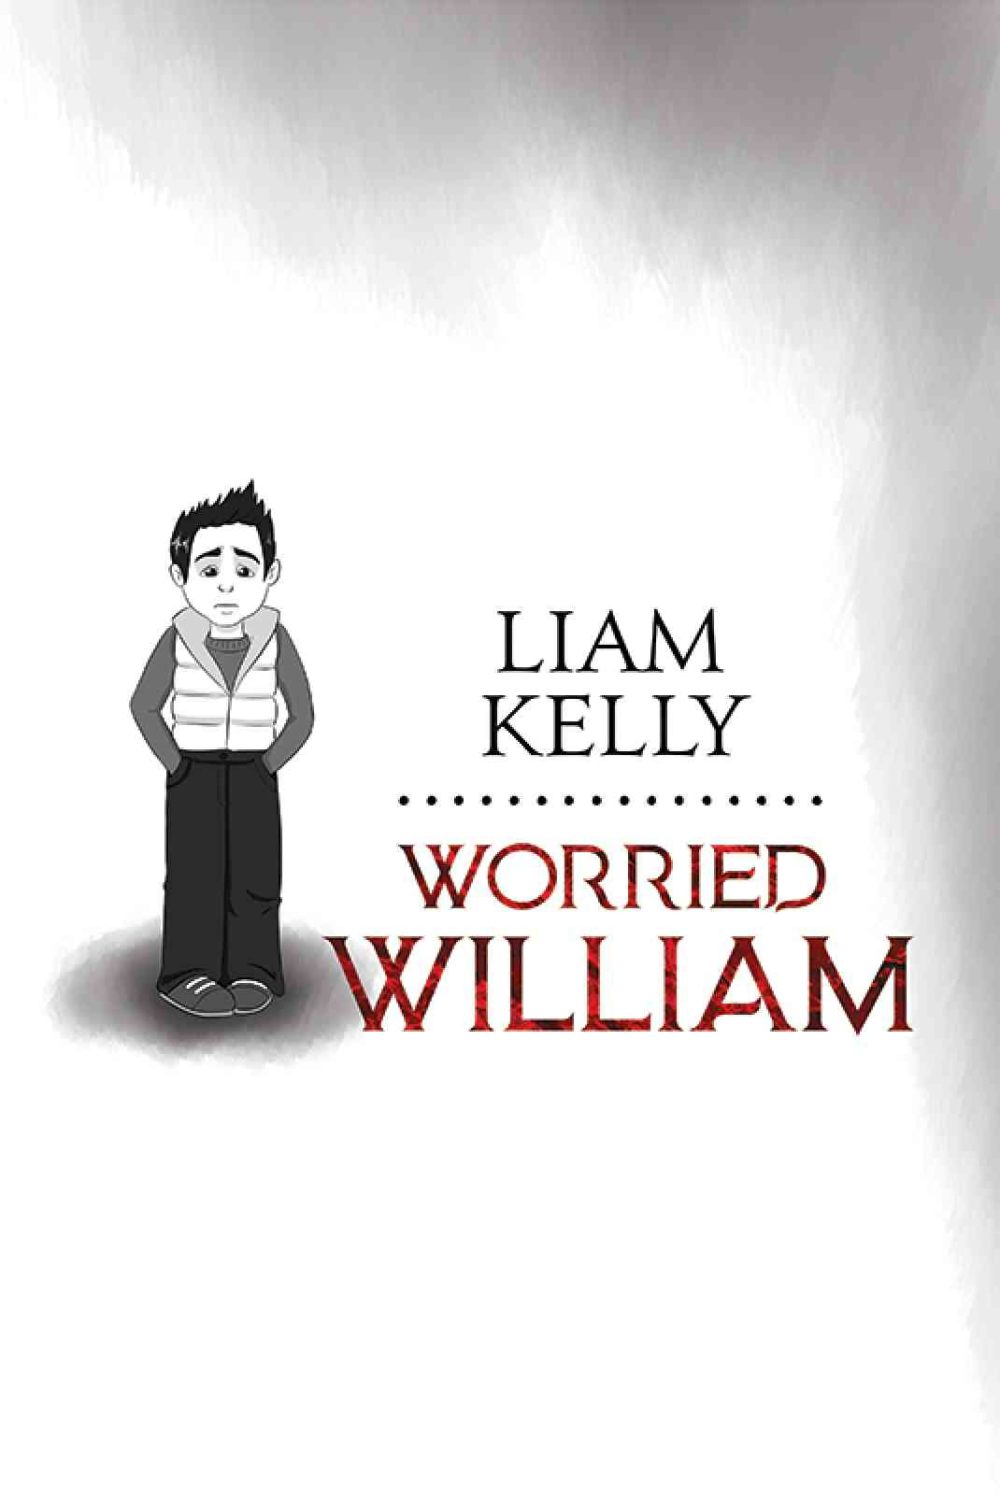 Worried William - explores childhood anxiety